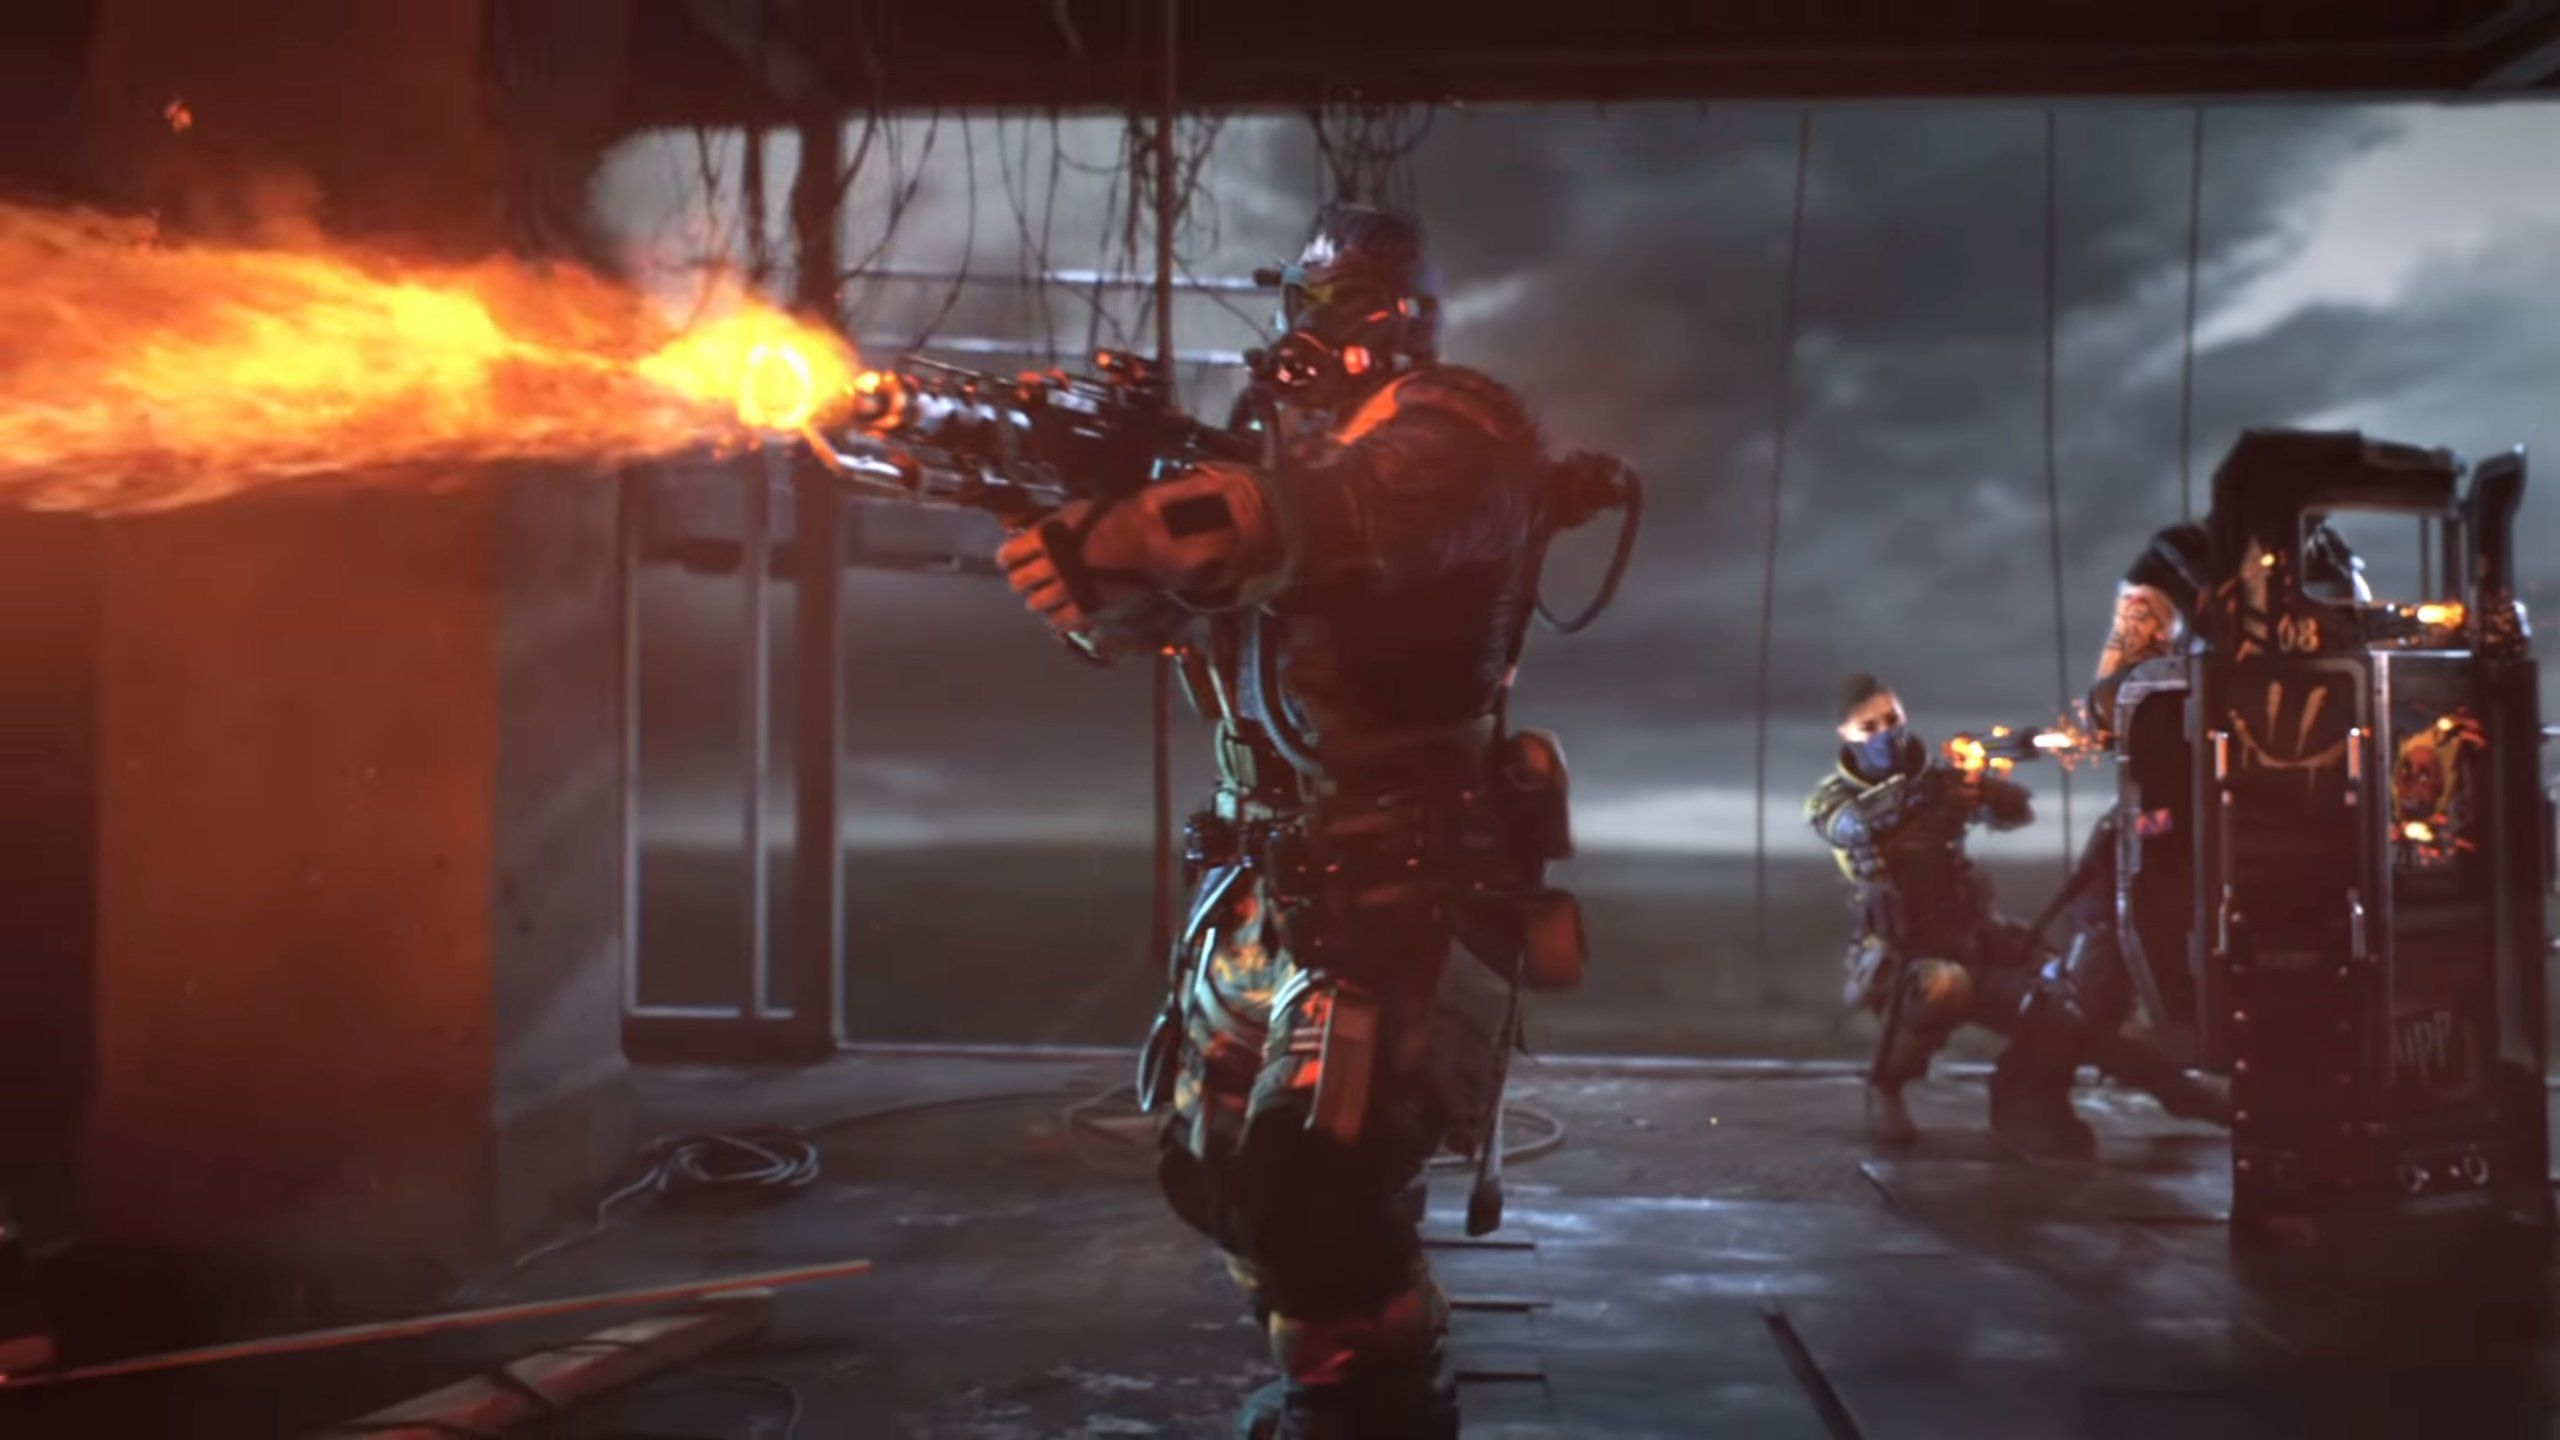 Call Of Duty Black Ops 4 Drops Steam For Blizzard S Battle Net Black Ops 4 Black Ops Call Of Duty Black